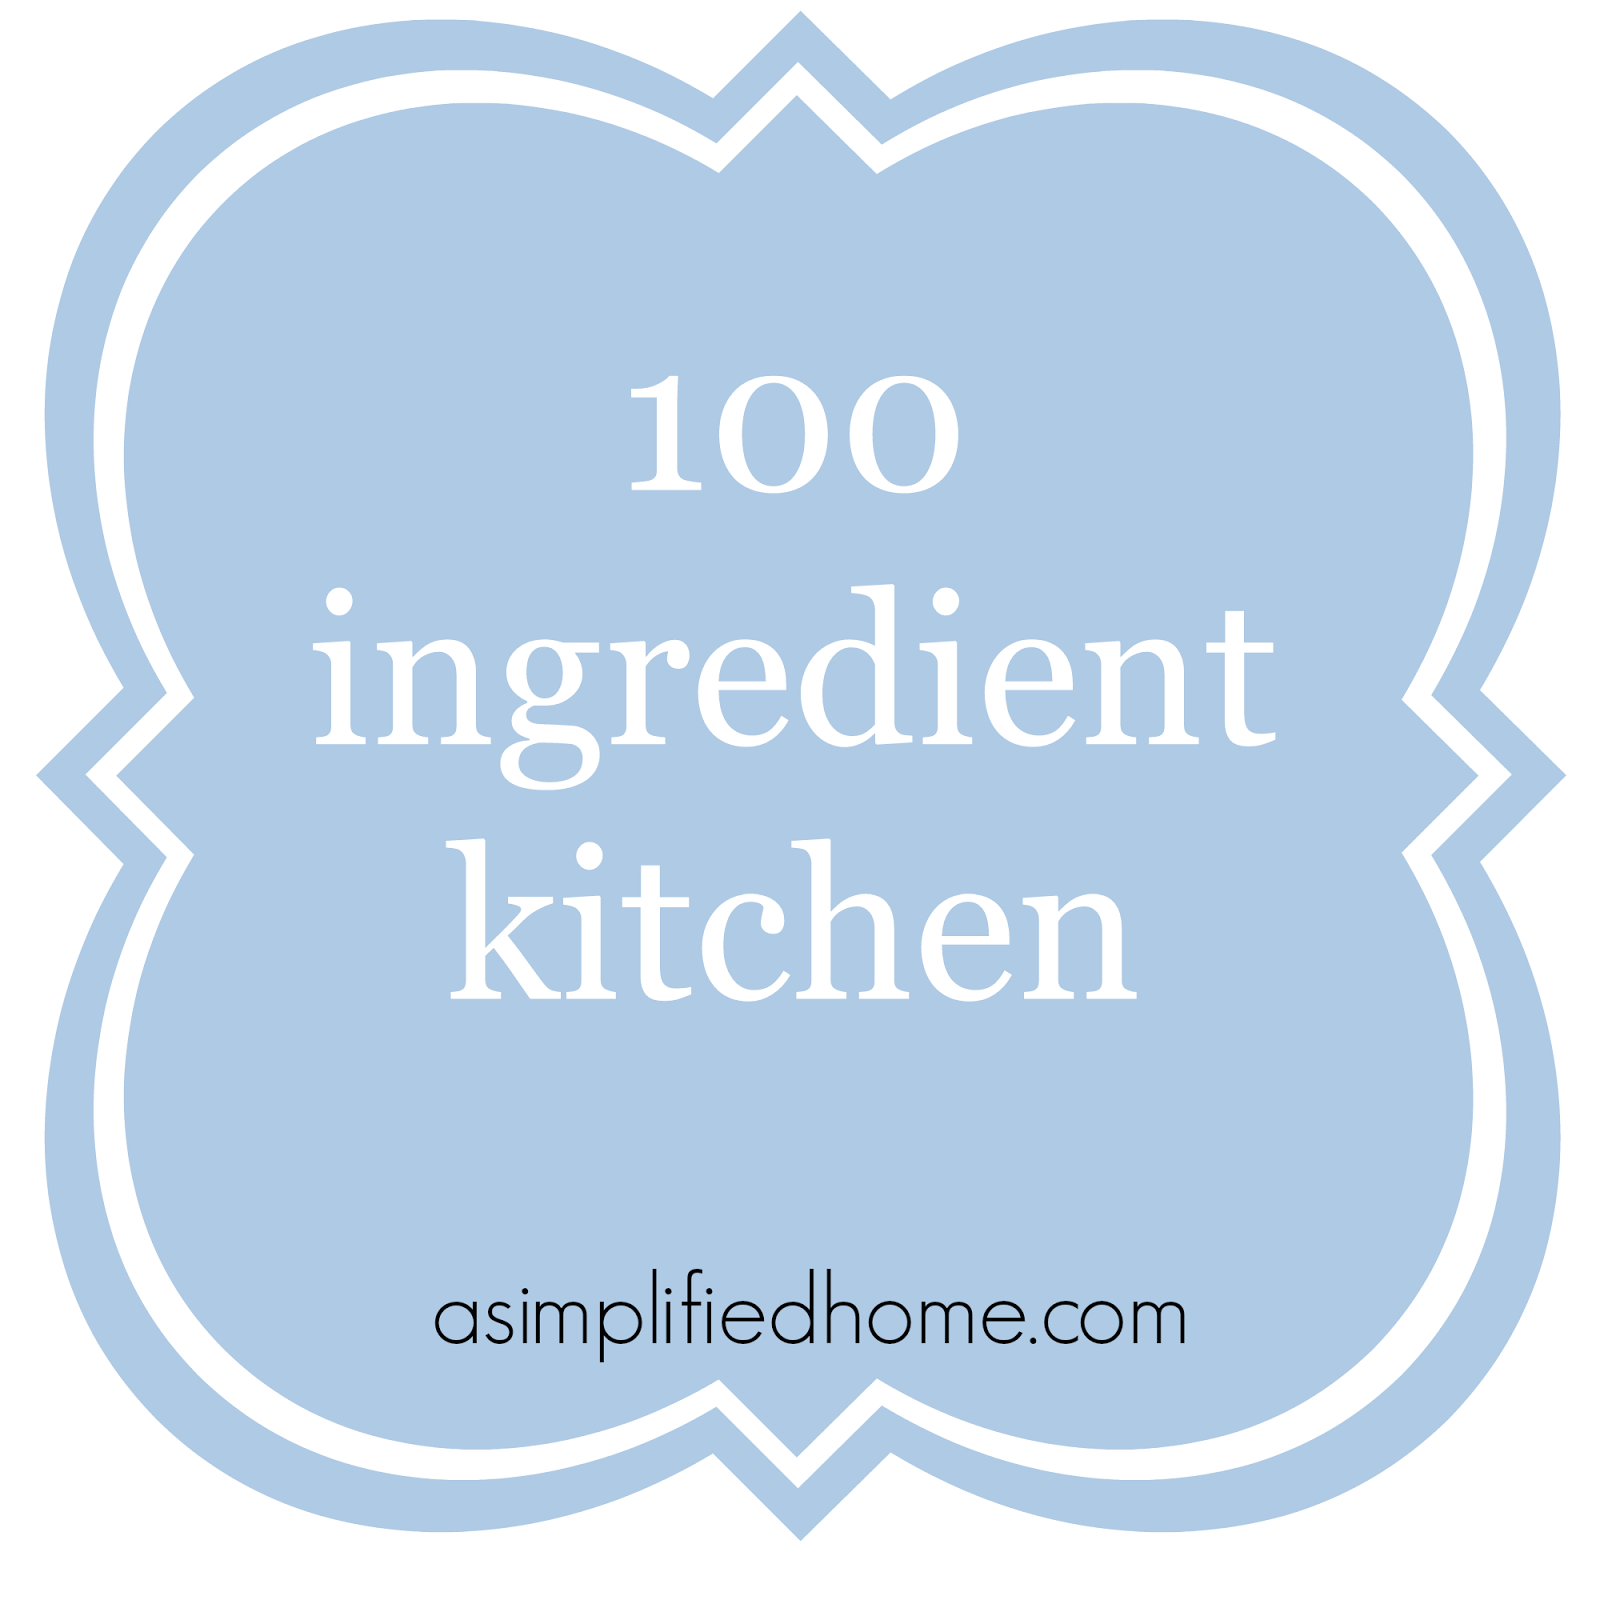 100 ingredient kitchen | asimplifiedhome.com